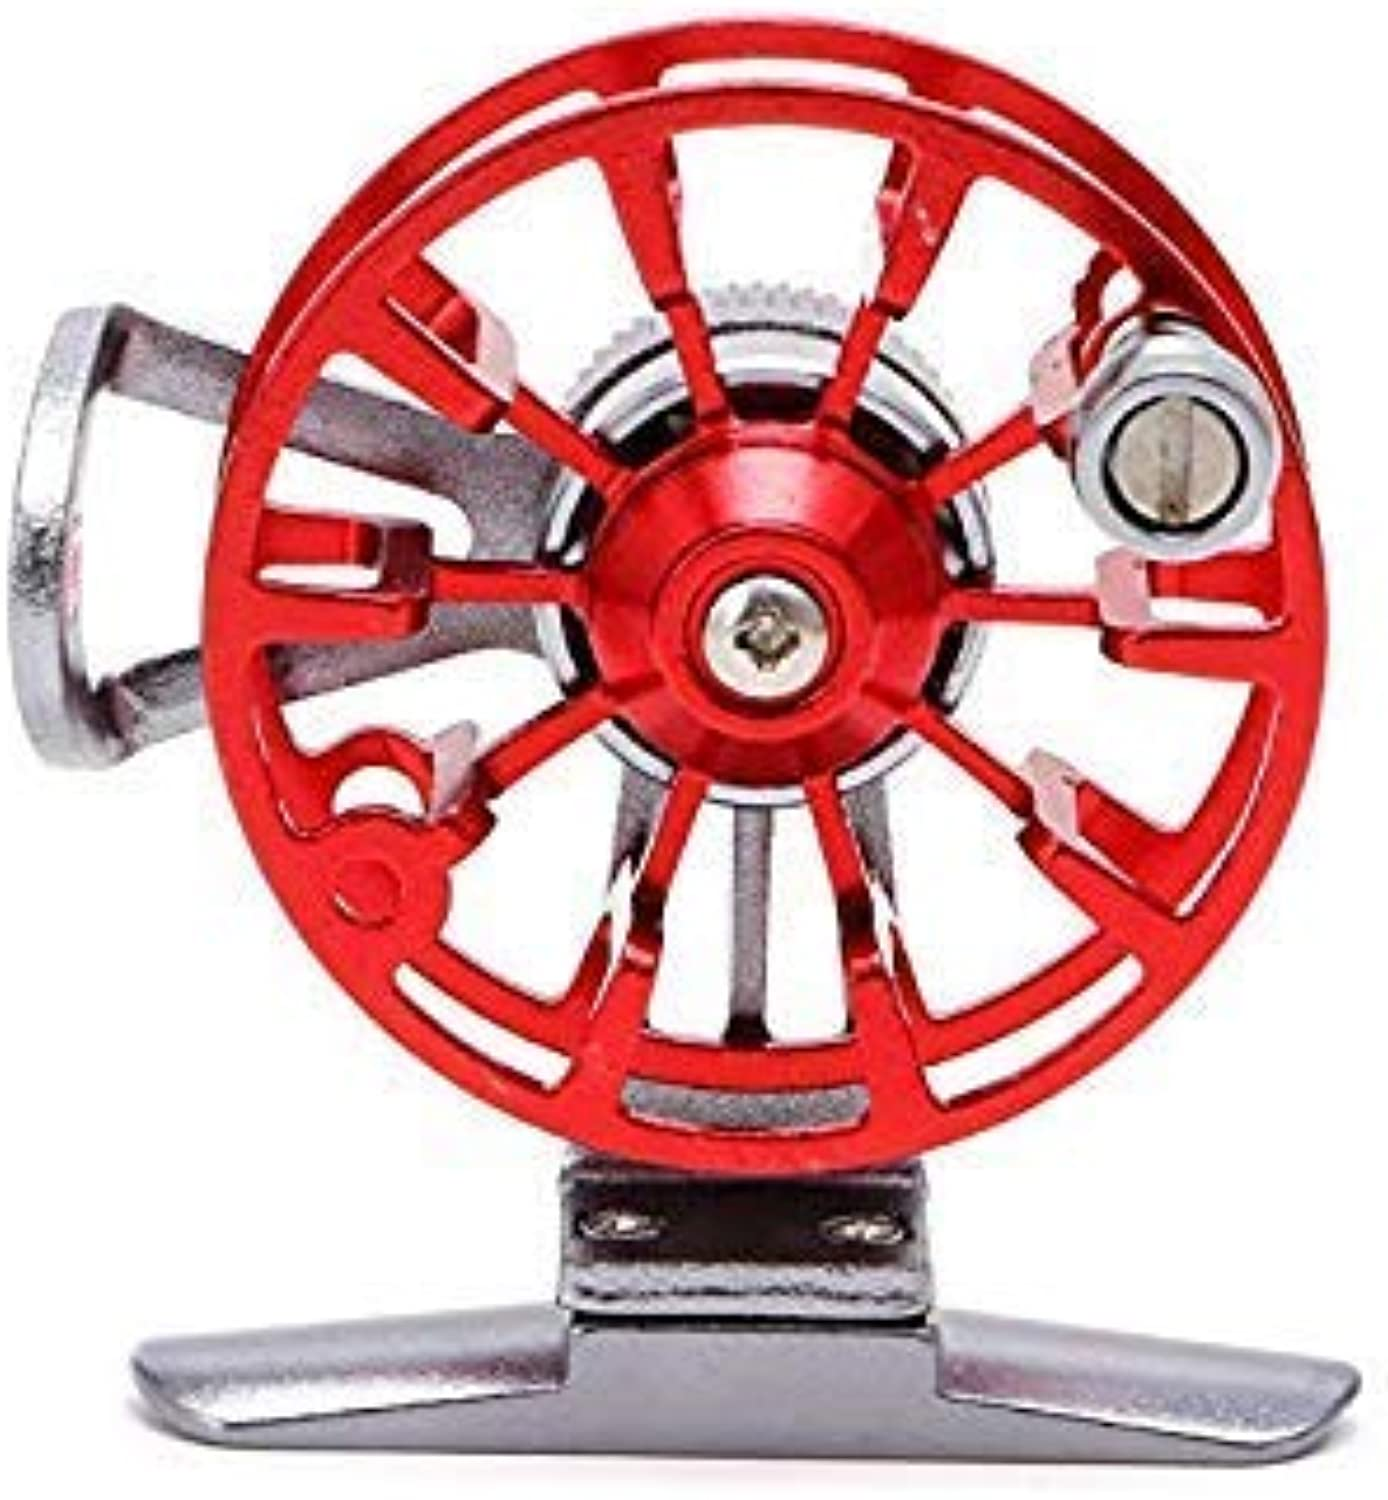 Full Metal UltraLight Simple Structure Former Ice Fishing Reels Wheel Fly Fishing Reel Aluminum color Red Use Mode Right Hand